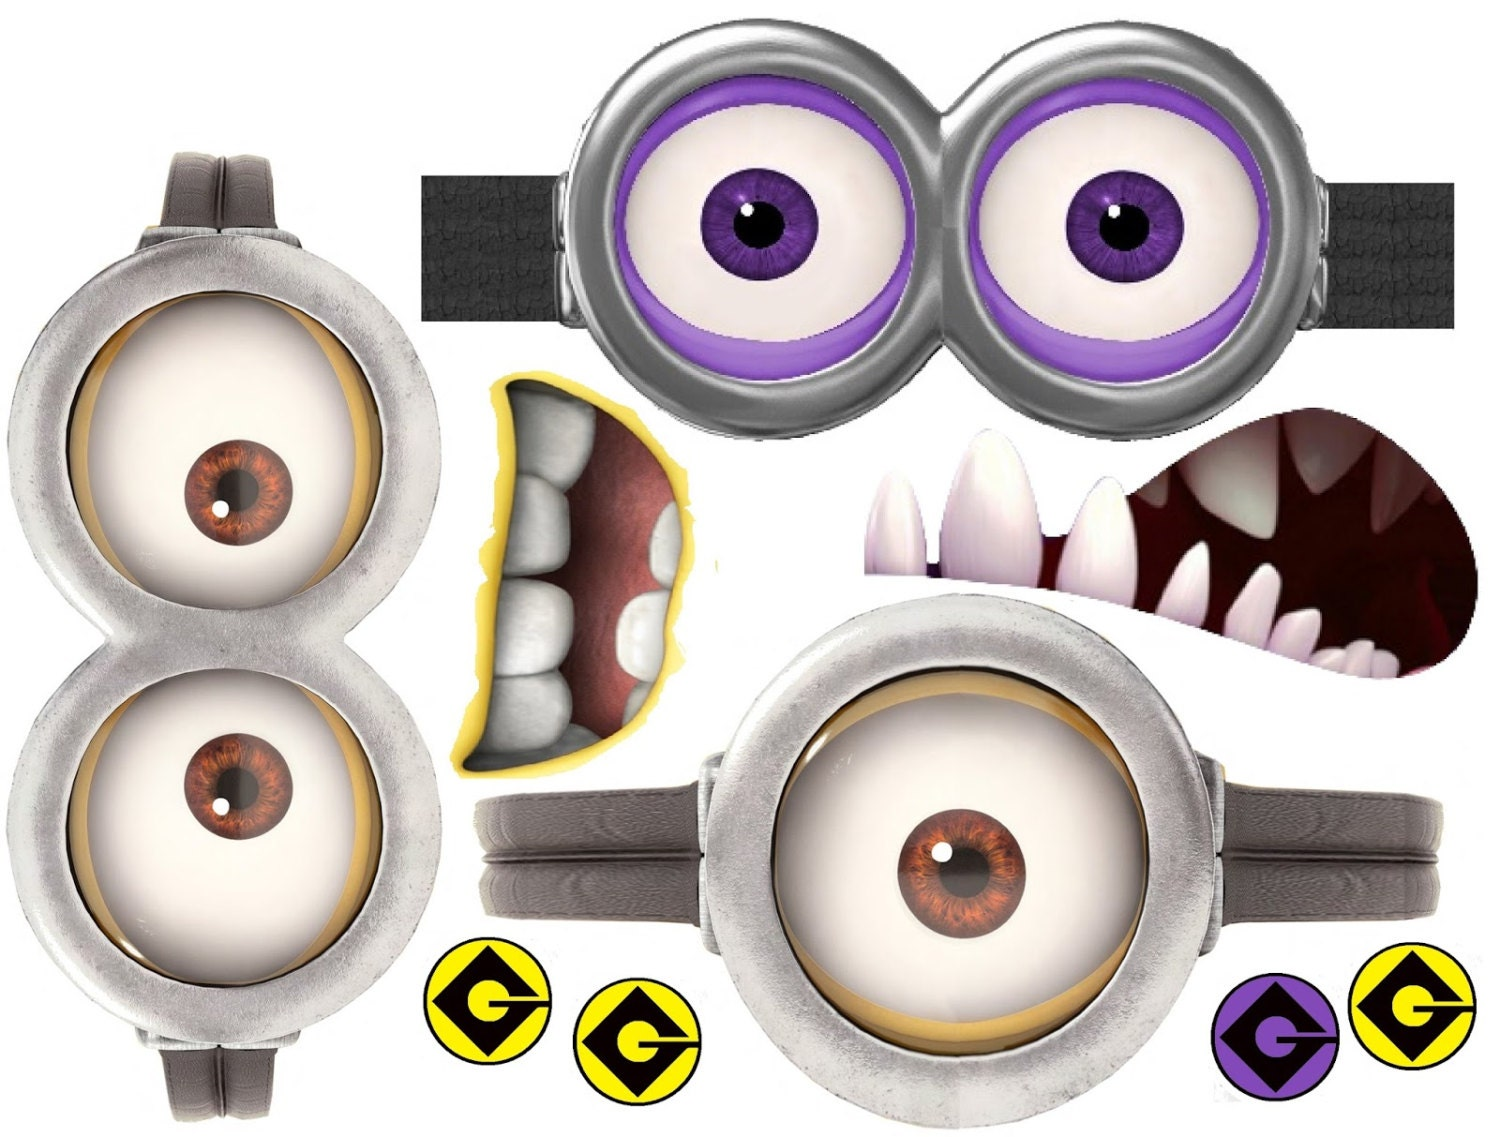 Crush image with regard to minions printable eyes